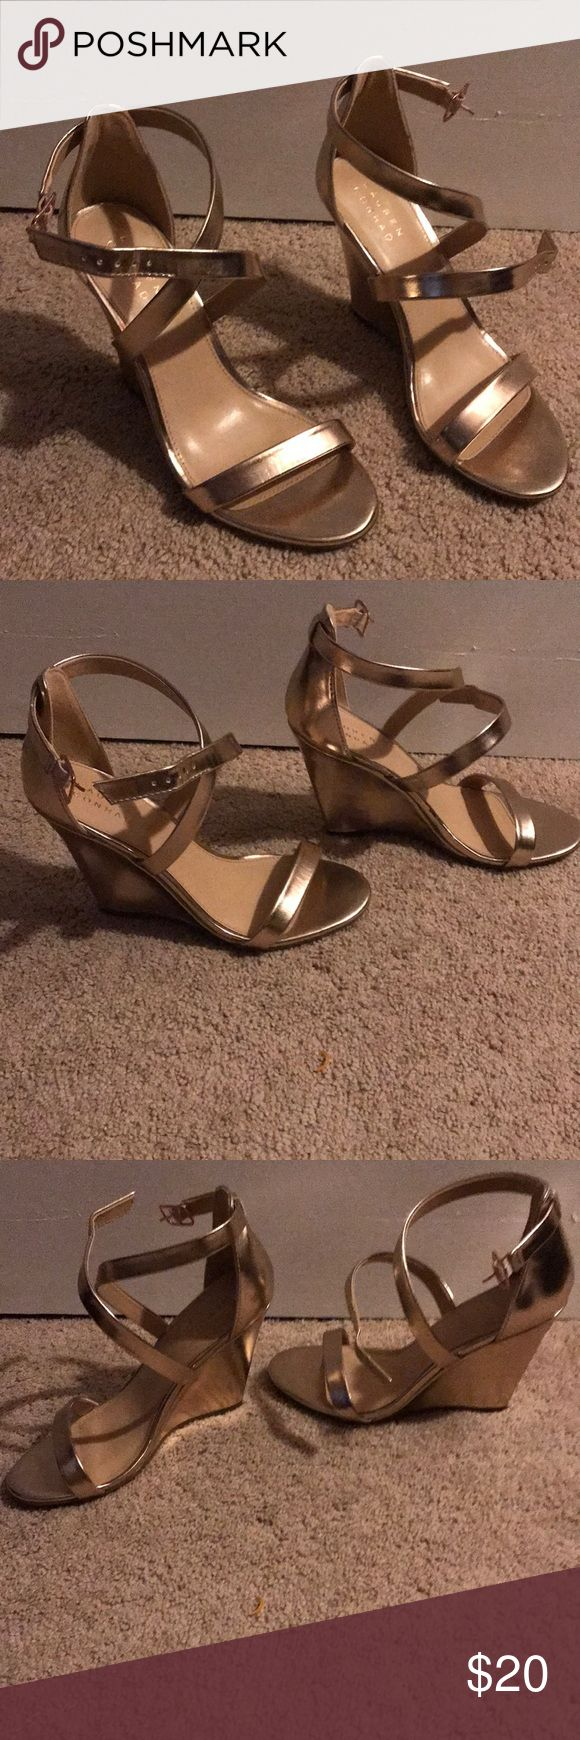 "Lauren Conrad Rose Gold Wedge Heels Size 8.5 These are in excellent condition.  Only worn once or twice.  No noticeable imperfections.  Straps buckle on the sides.  The wedges/heels are roughly 3"" tall. LC Lauren Conrad Shoes Wedges"